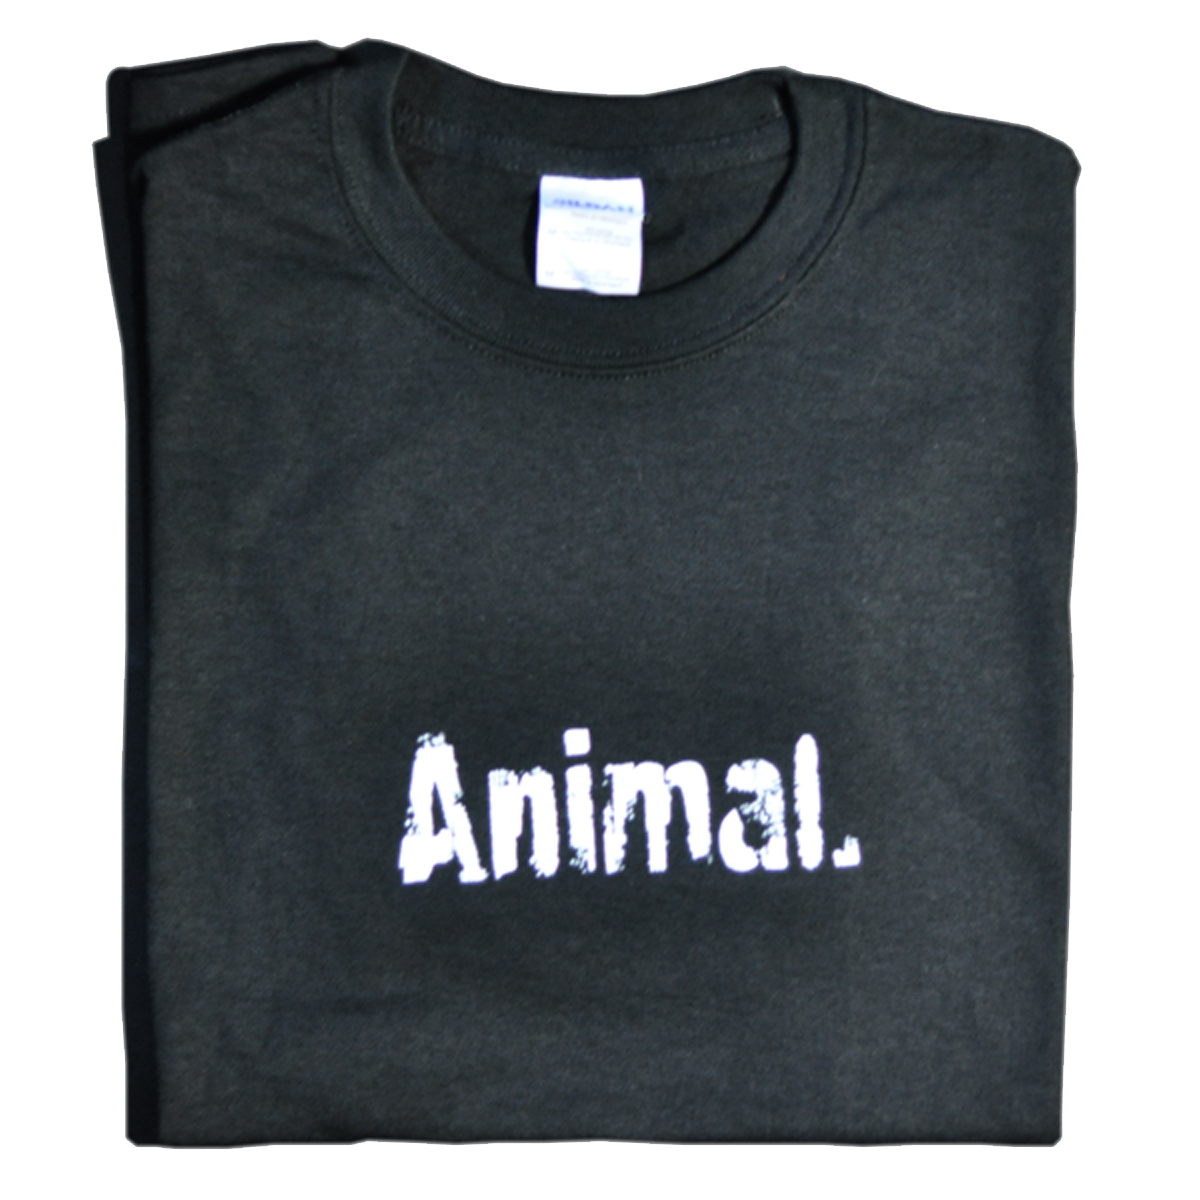 Black Animal T-Shirt Large By Universal Nutrition